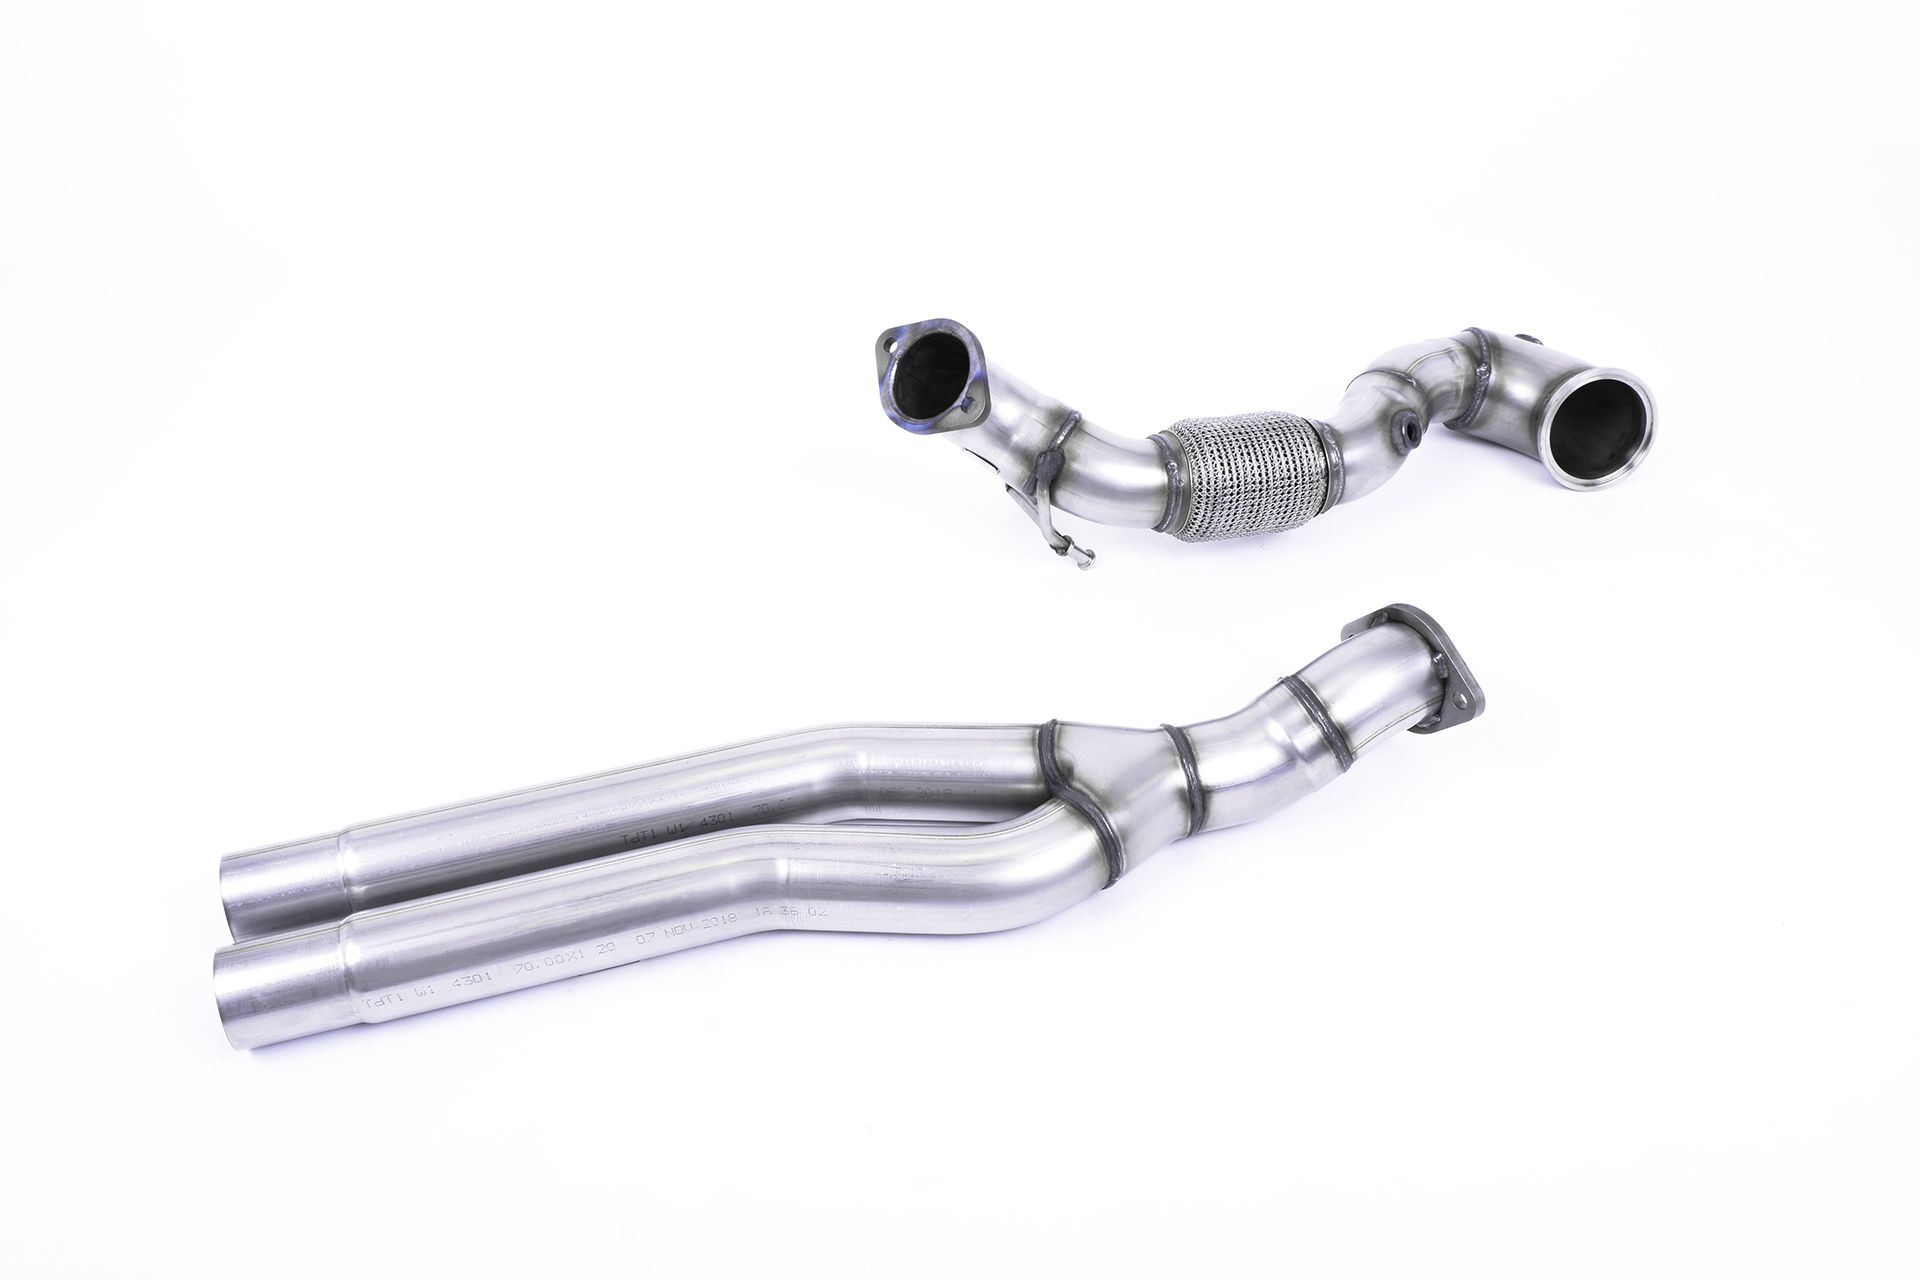 Milltek Sport Large Bore Downpipe With Catalyst Delete for Audi RS3 Saloon | Sedan 400PS (Non OPF GPF Models)_1